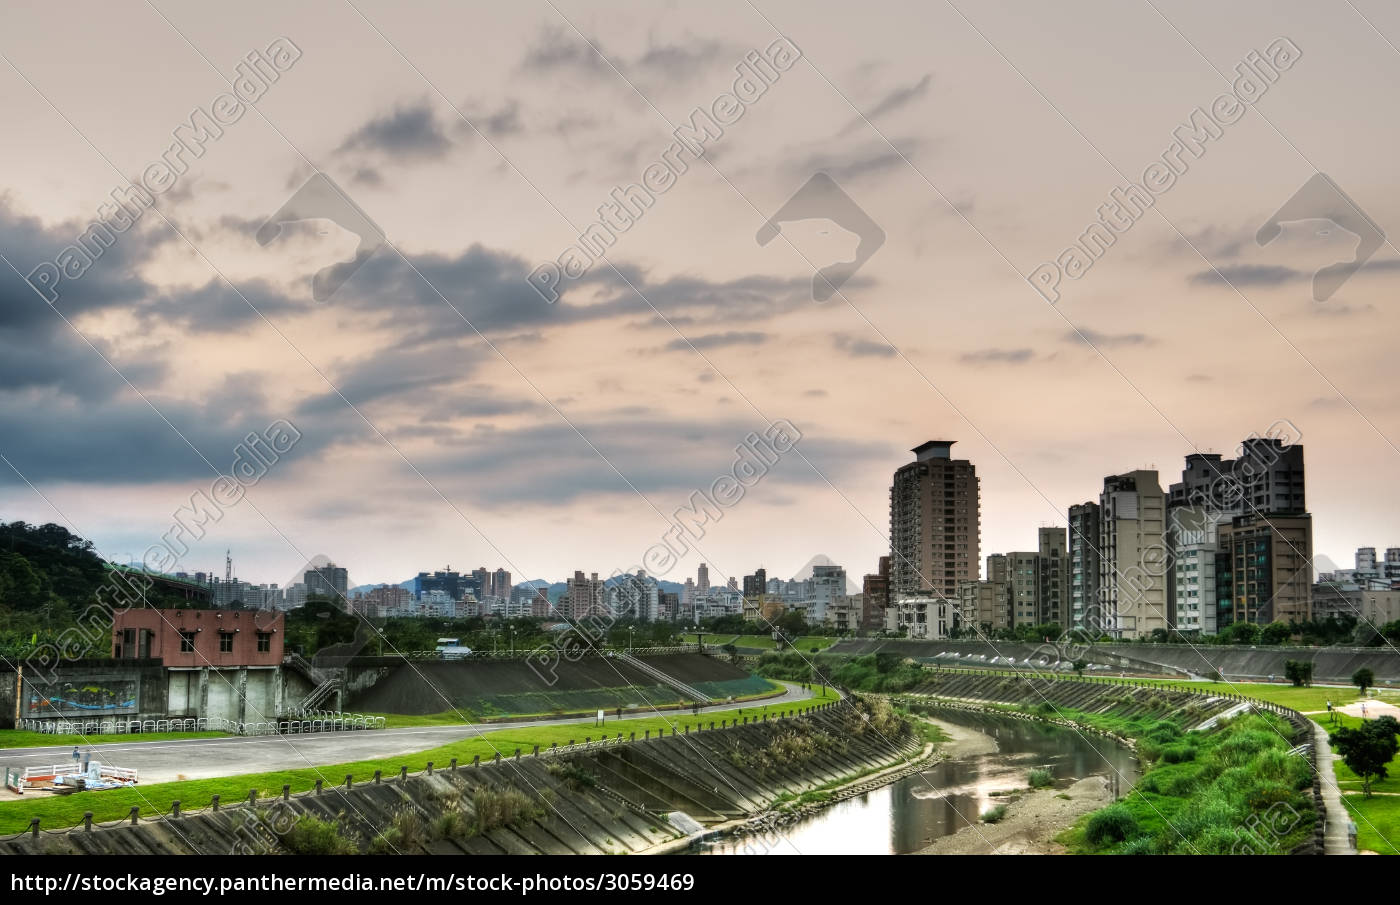 cityscape, of, outdoor - 3059469